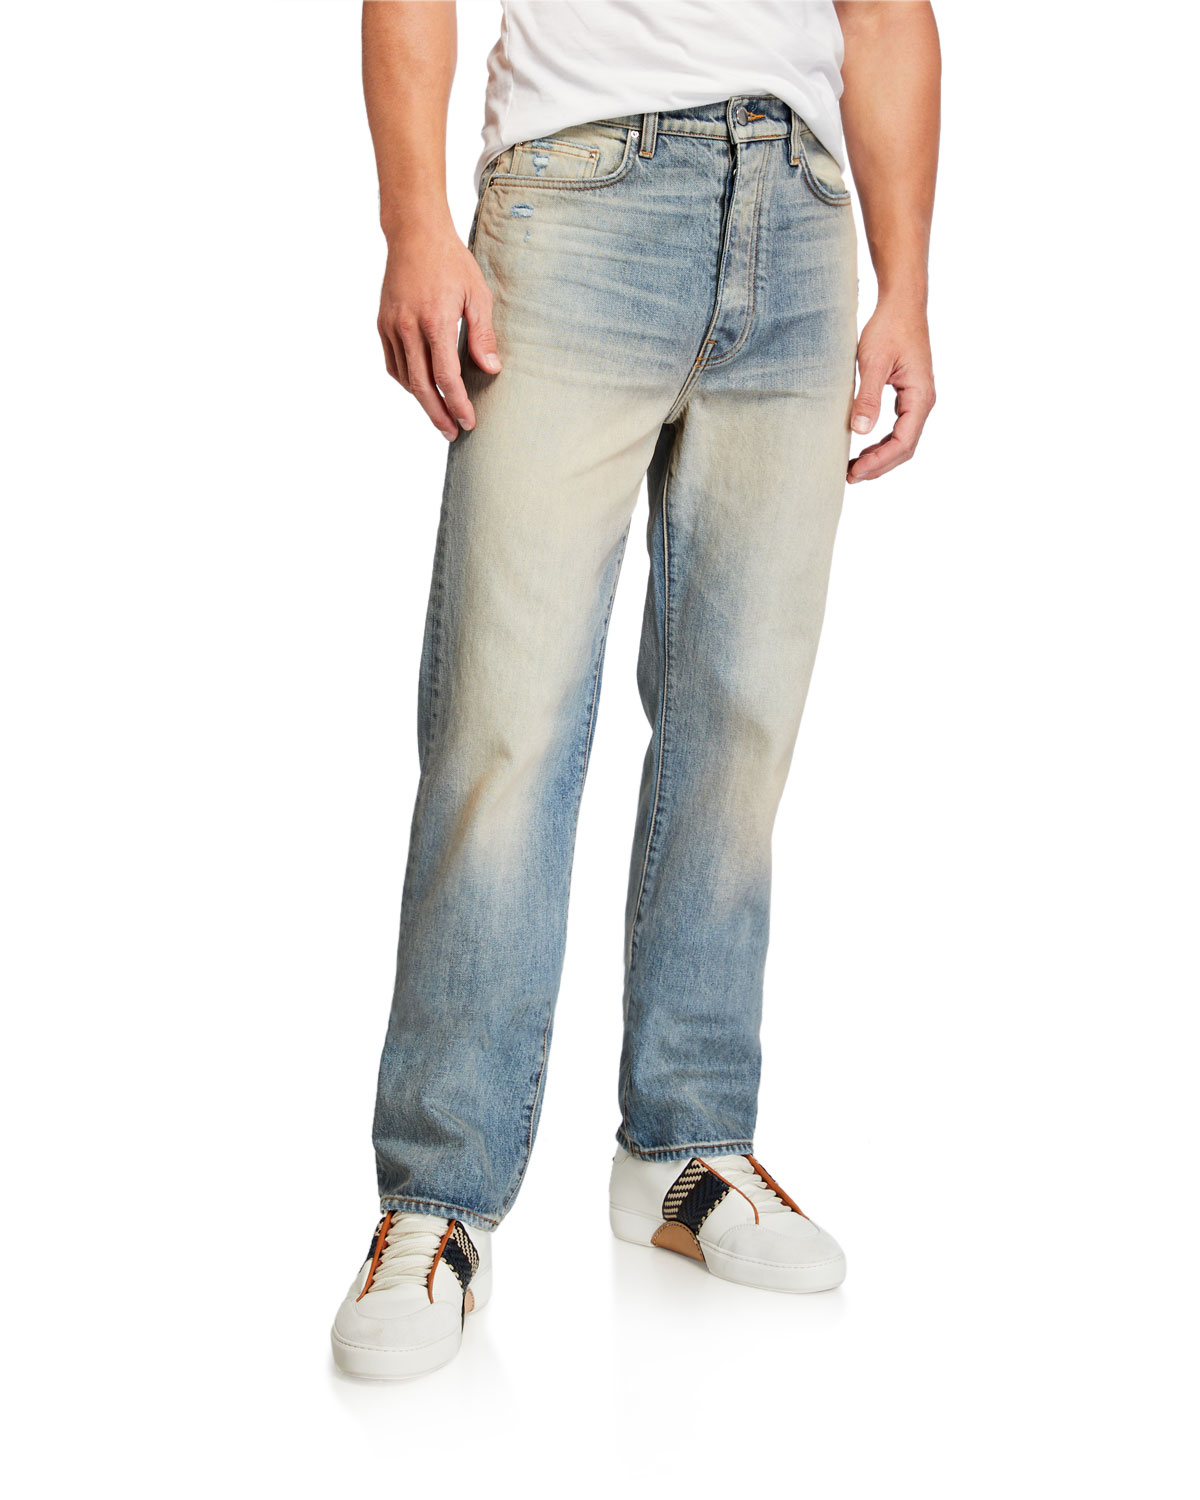 Amiri Jeans MEN'S RELAXED VINTAGE LIGHT-WASH JEANS